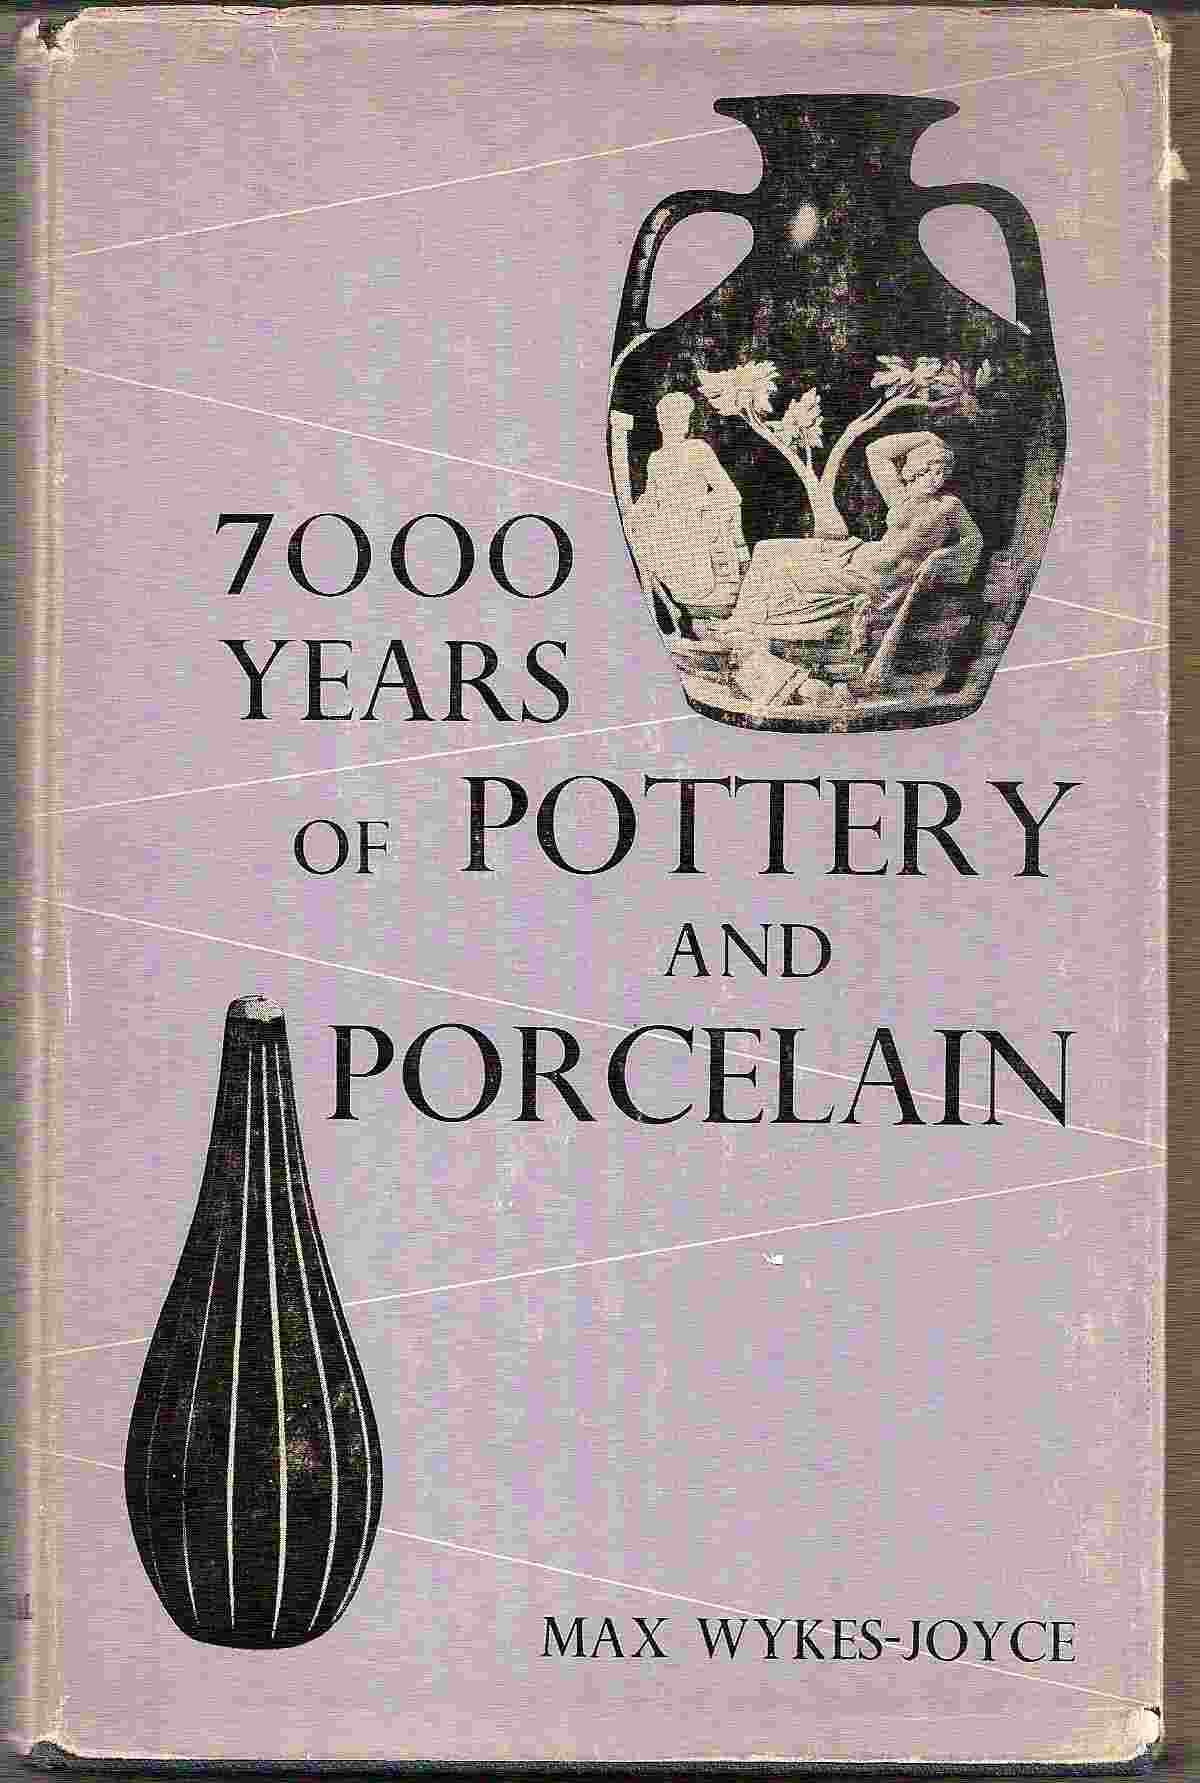 Image for 7000 YEARS OF POTTERY AND PORCELAIN